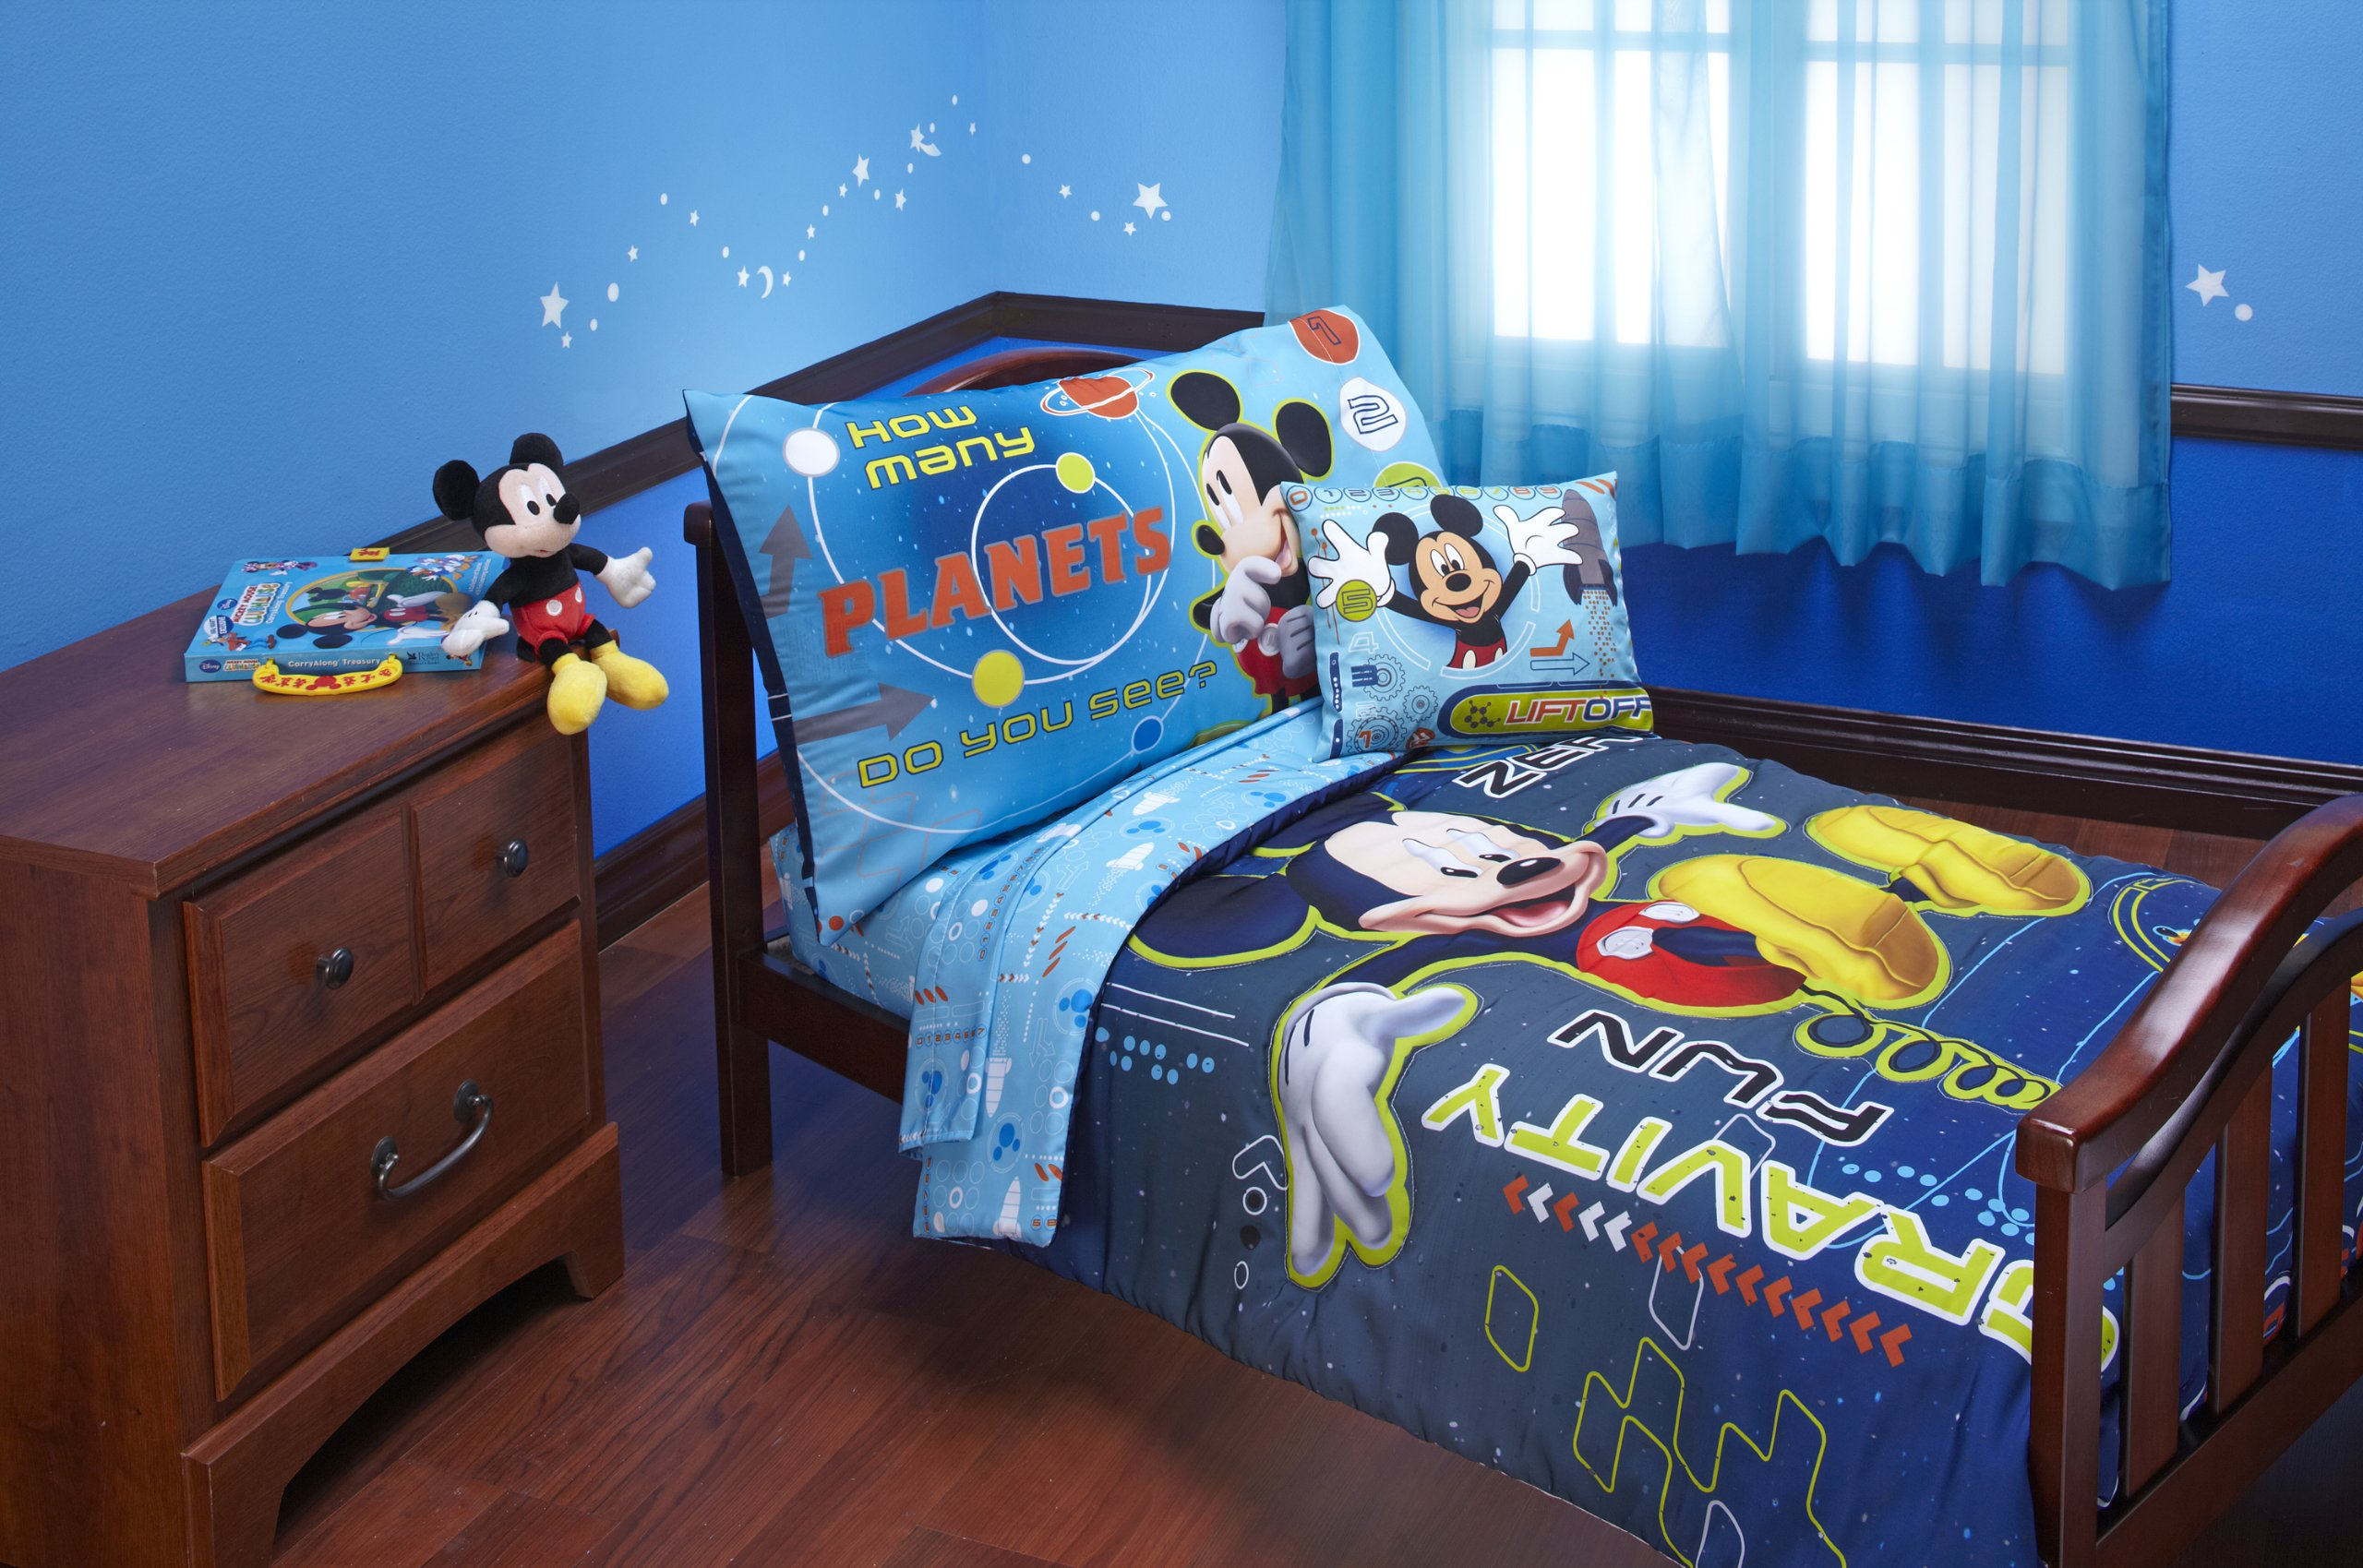 Disney Mickey Mouse Space Adventures 4 Piece Toddler Set  Blue. Amazon com   Disney Mickey Mouse Room in a Box  Toddler Bed  Table